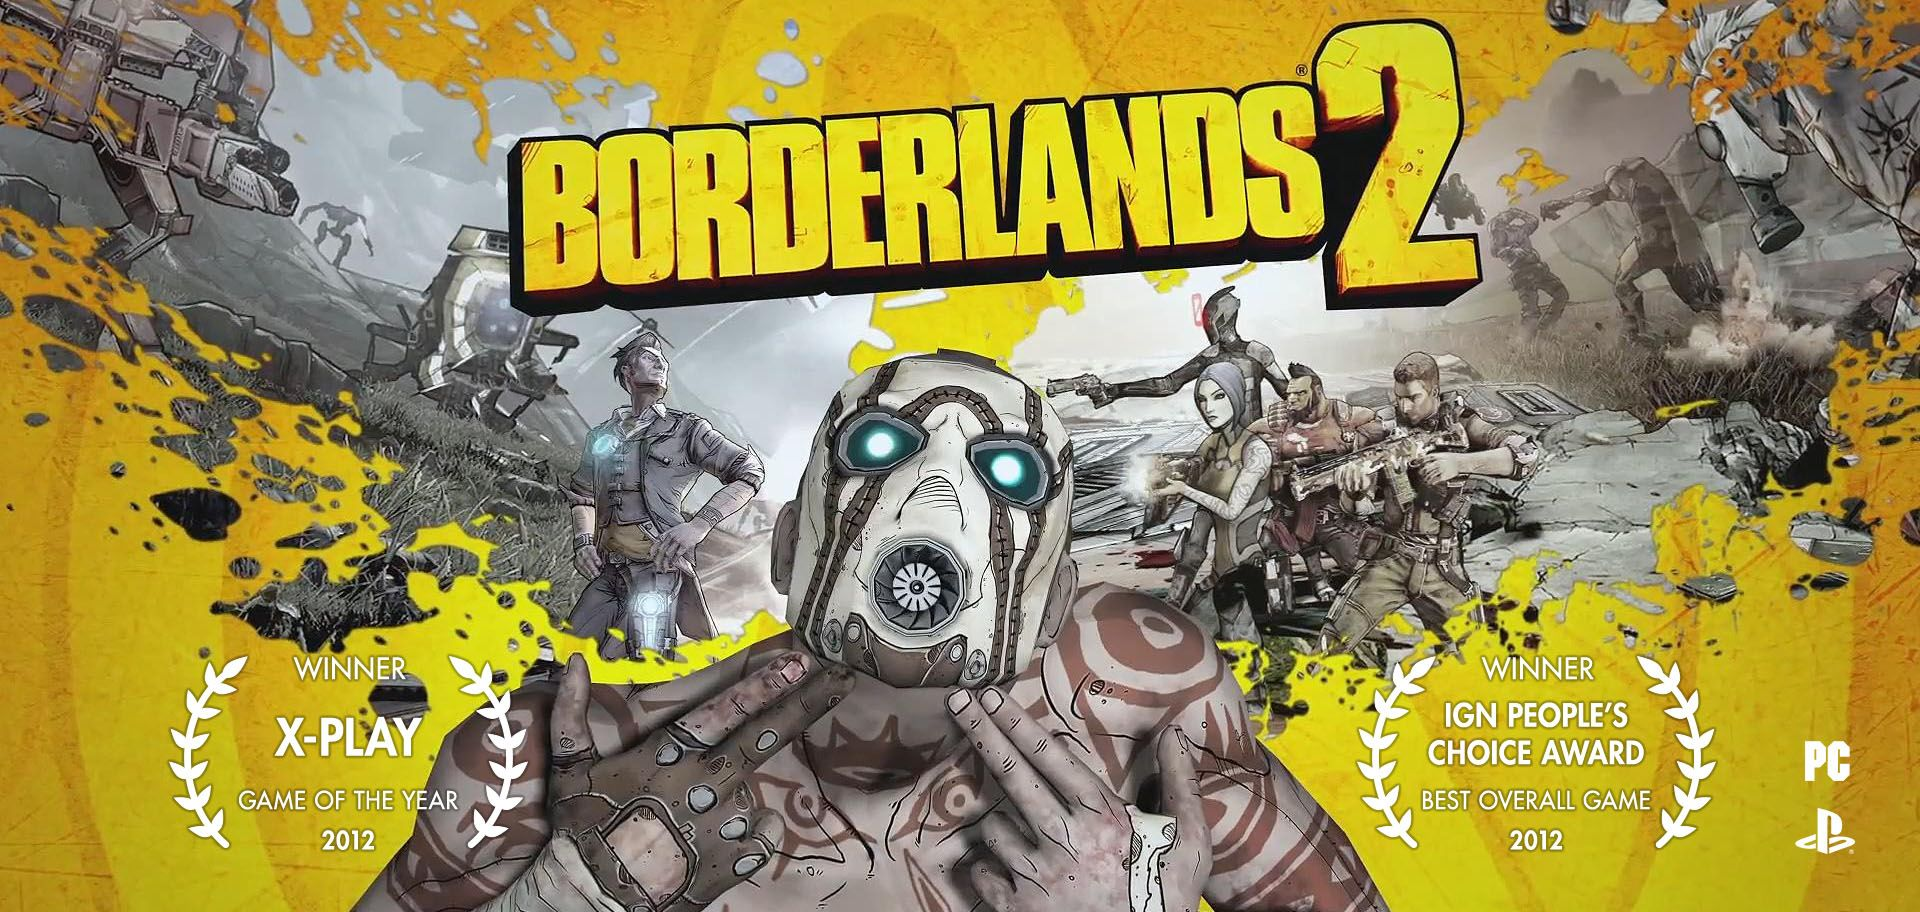 BSG1312_BORDERLANDS2_PC-compressor